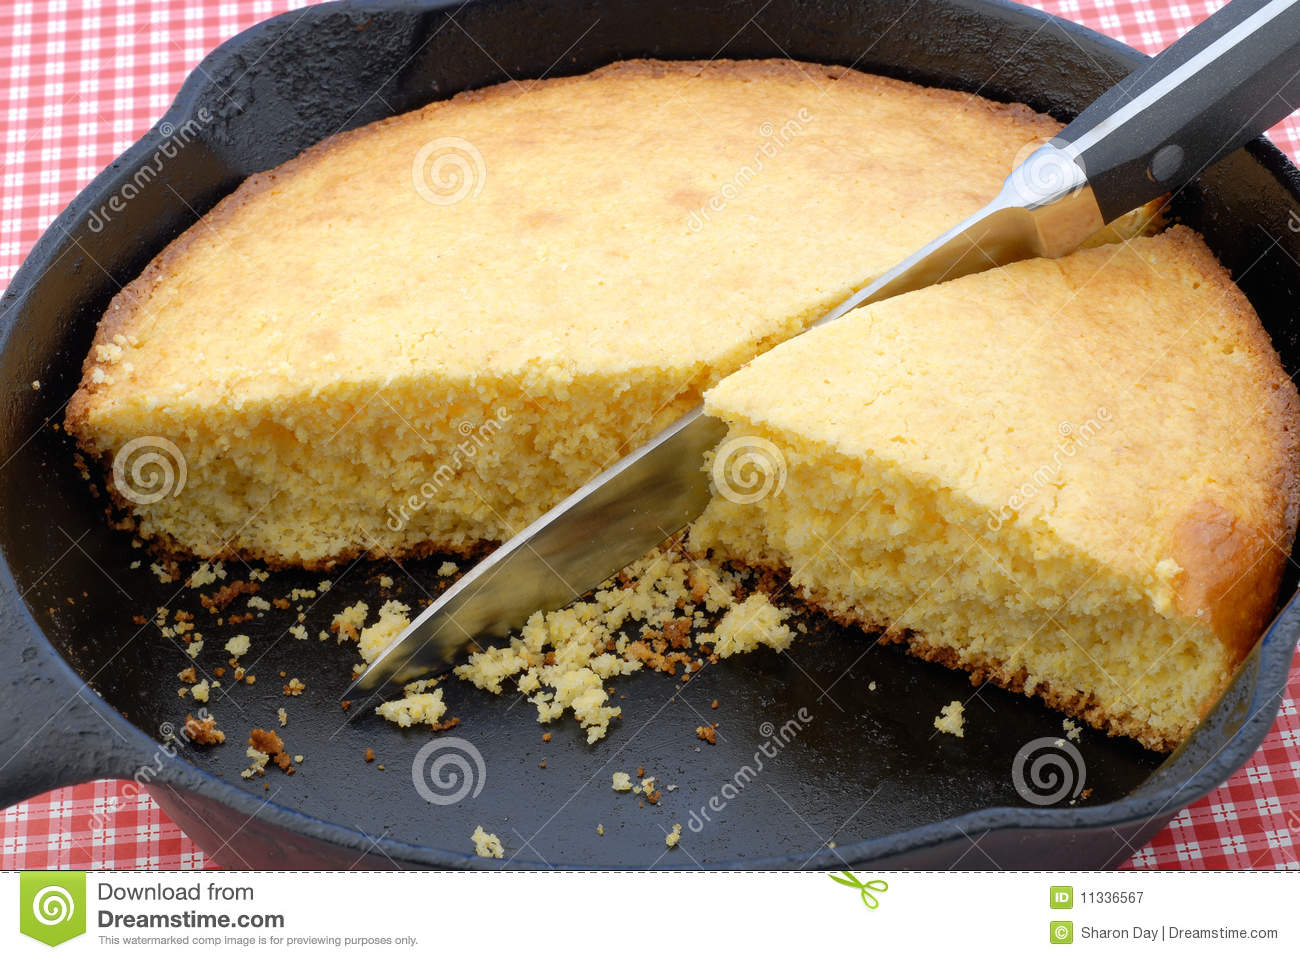 Closeup Of Cornbread In A Cast Iron Skillet Against A Red Checked